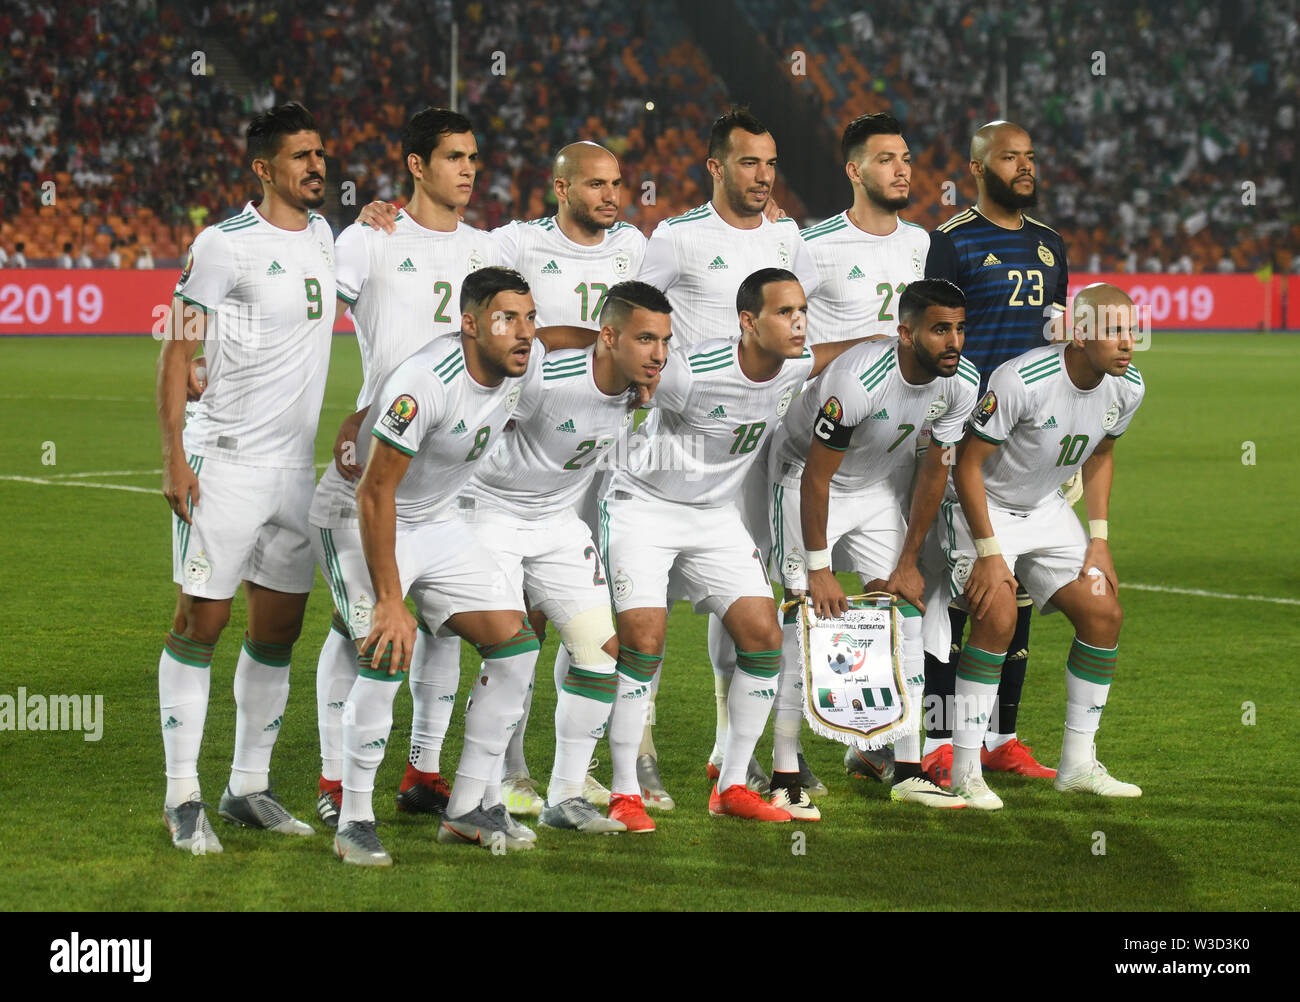 Cairo. 14th July, 2019. Players of Algeria pose for photos before the semifinal match between Algeria and Nigeria at the 2019 Africa Cup of Nations in Cairo, Egypt on July 14, 2019. Credit: Wu Huiwo/Xinhua/Alamy Live News - Stock Image